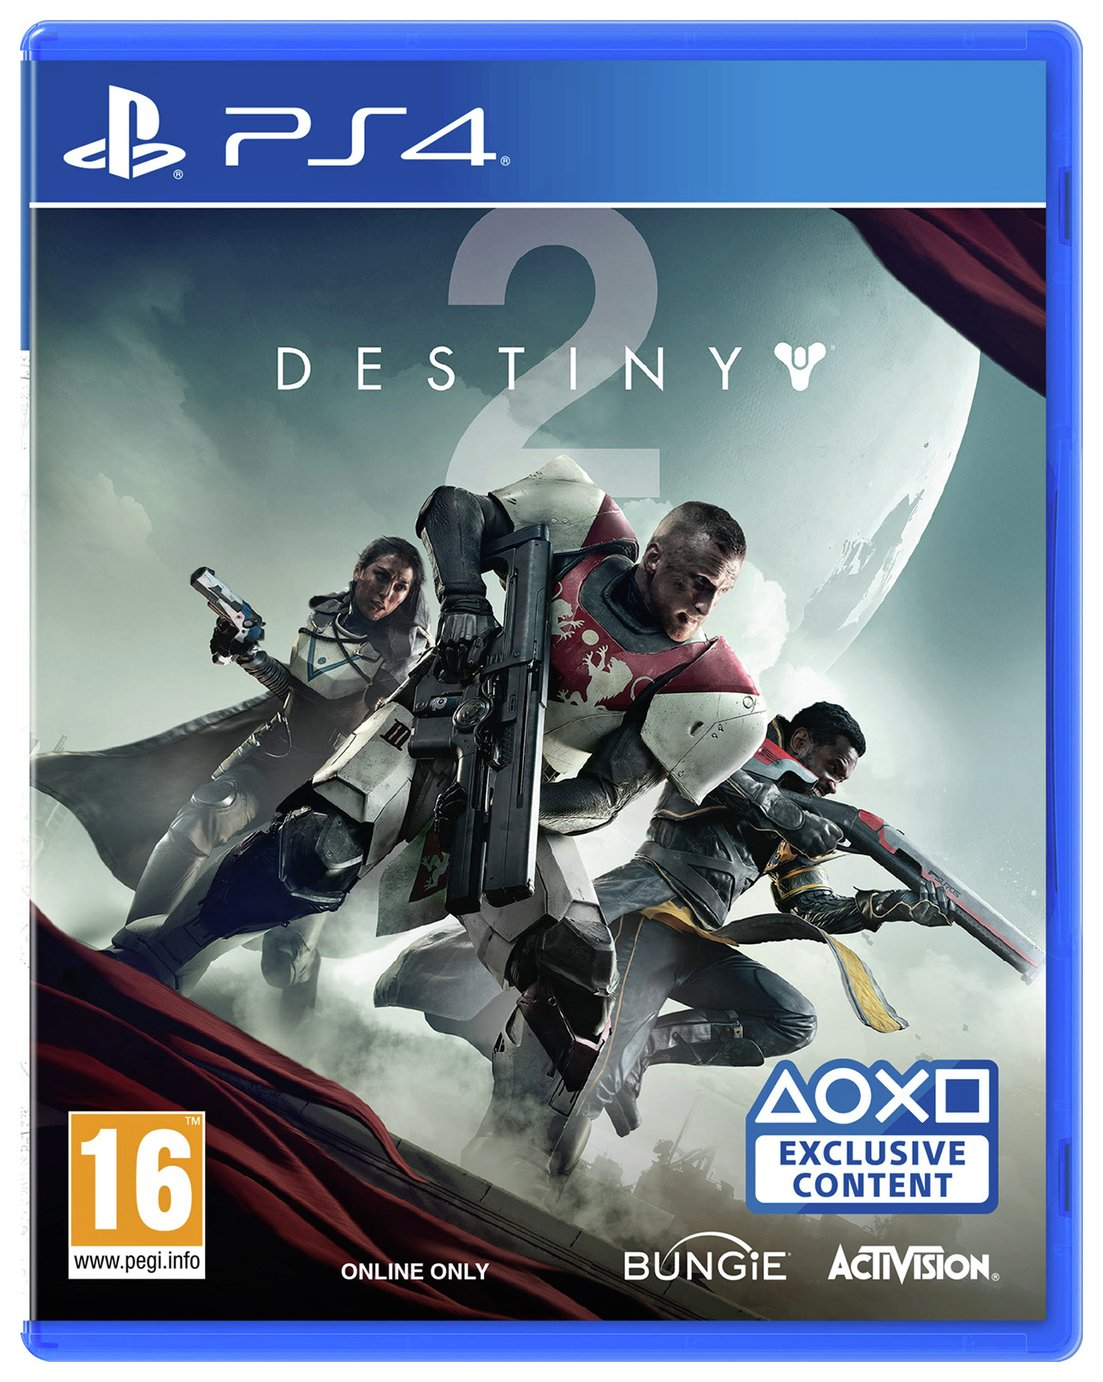 Image of Destiny 2 PS4 Game